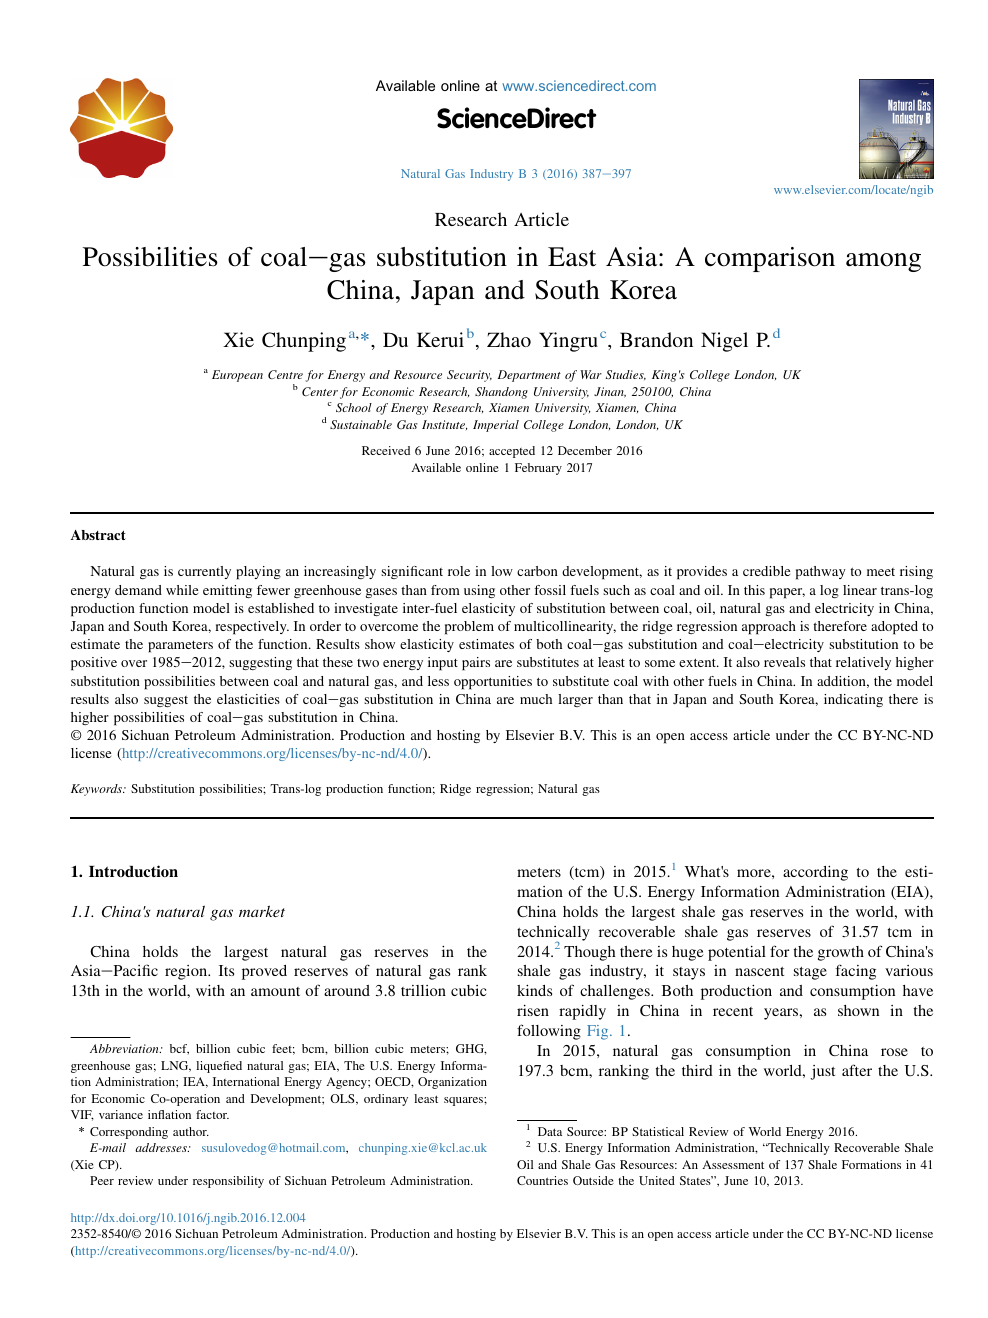 Possibilities of coal–gas substitution in East Asia: A comparison